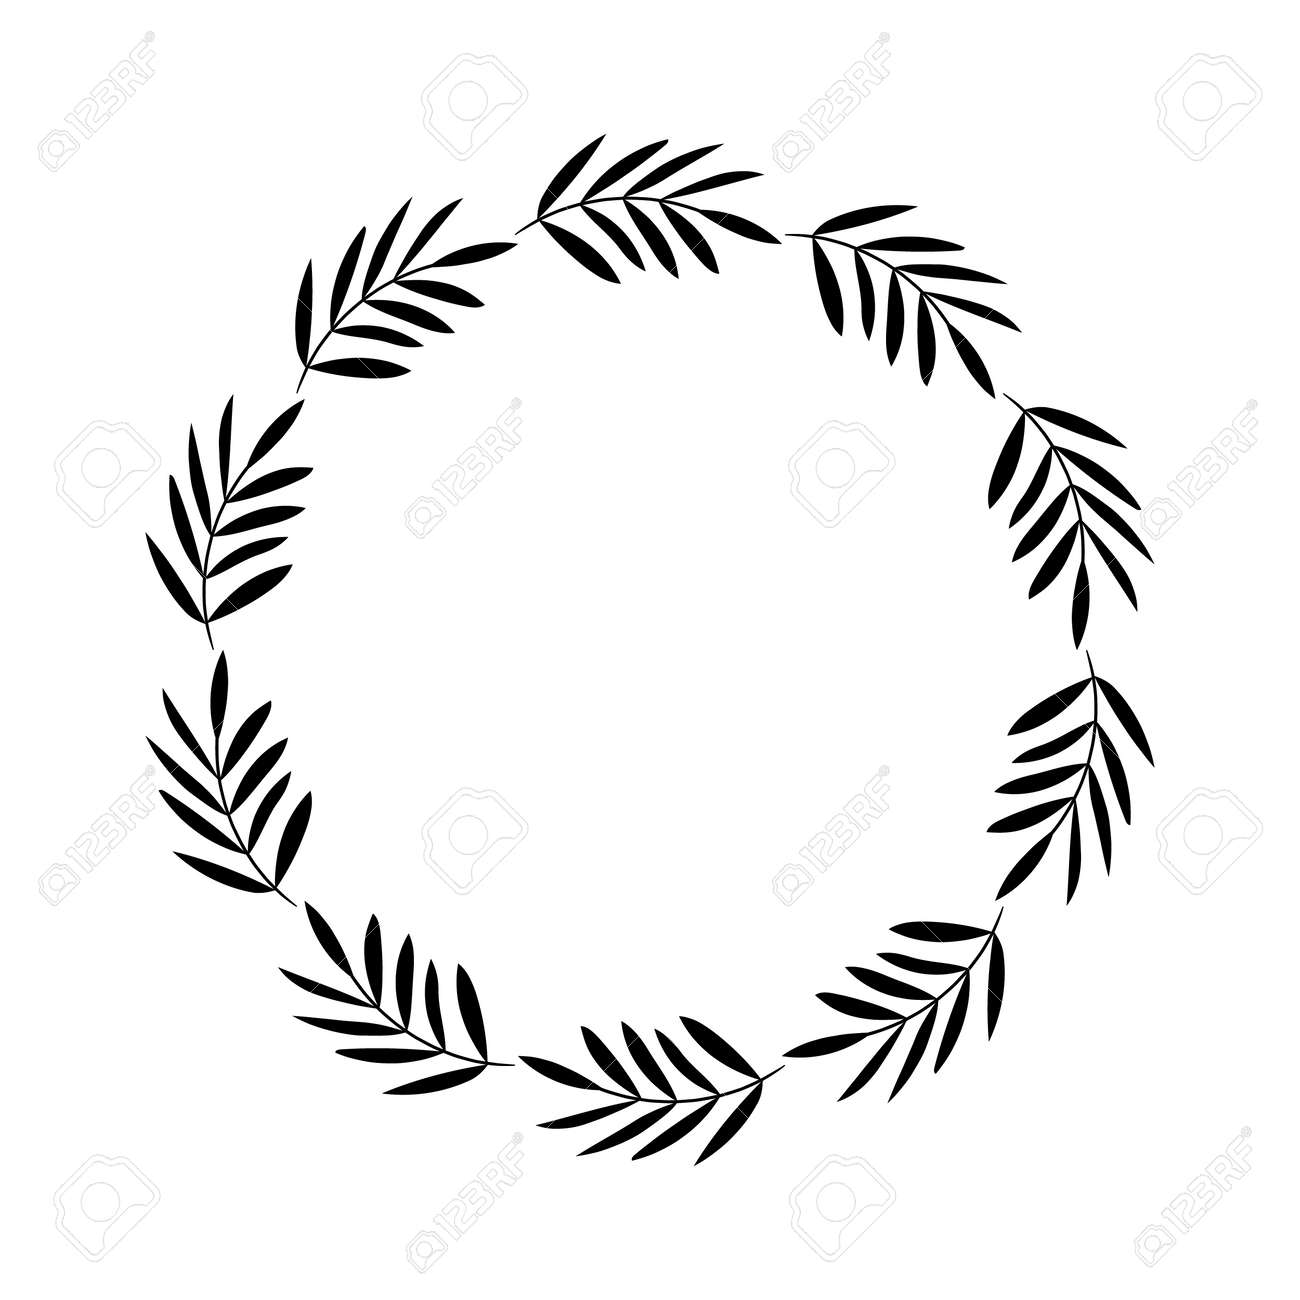 Round Floral Rustic Frame Simple Wreath On White Background Stock Vector